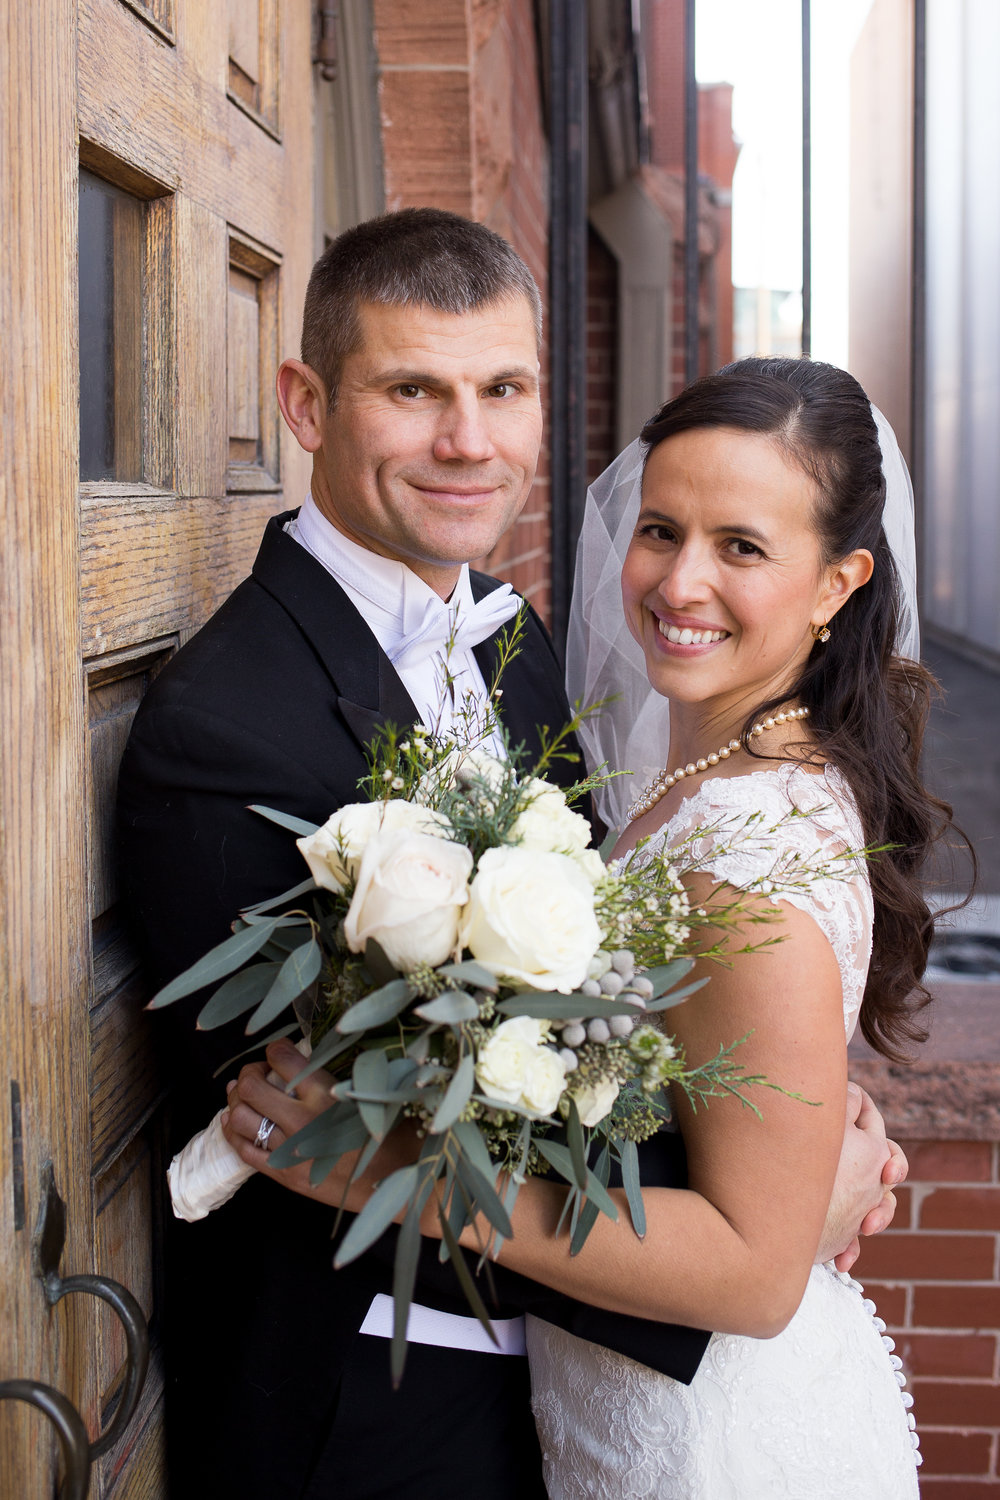 Jacque will colorado springs winter wedding first baptist winter wedding at first baptist church outside by the brick wall in colorado springs stacy carosa mightylinksfo